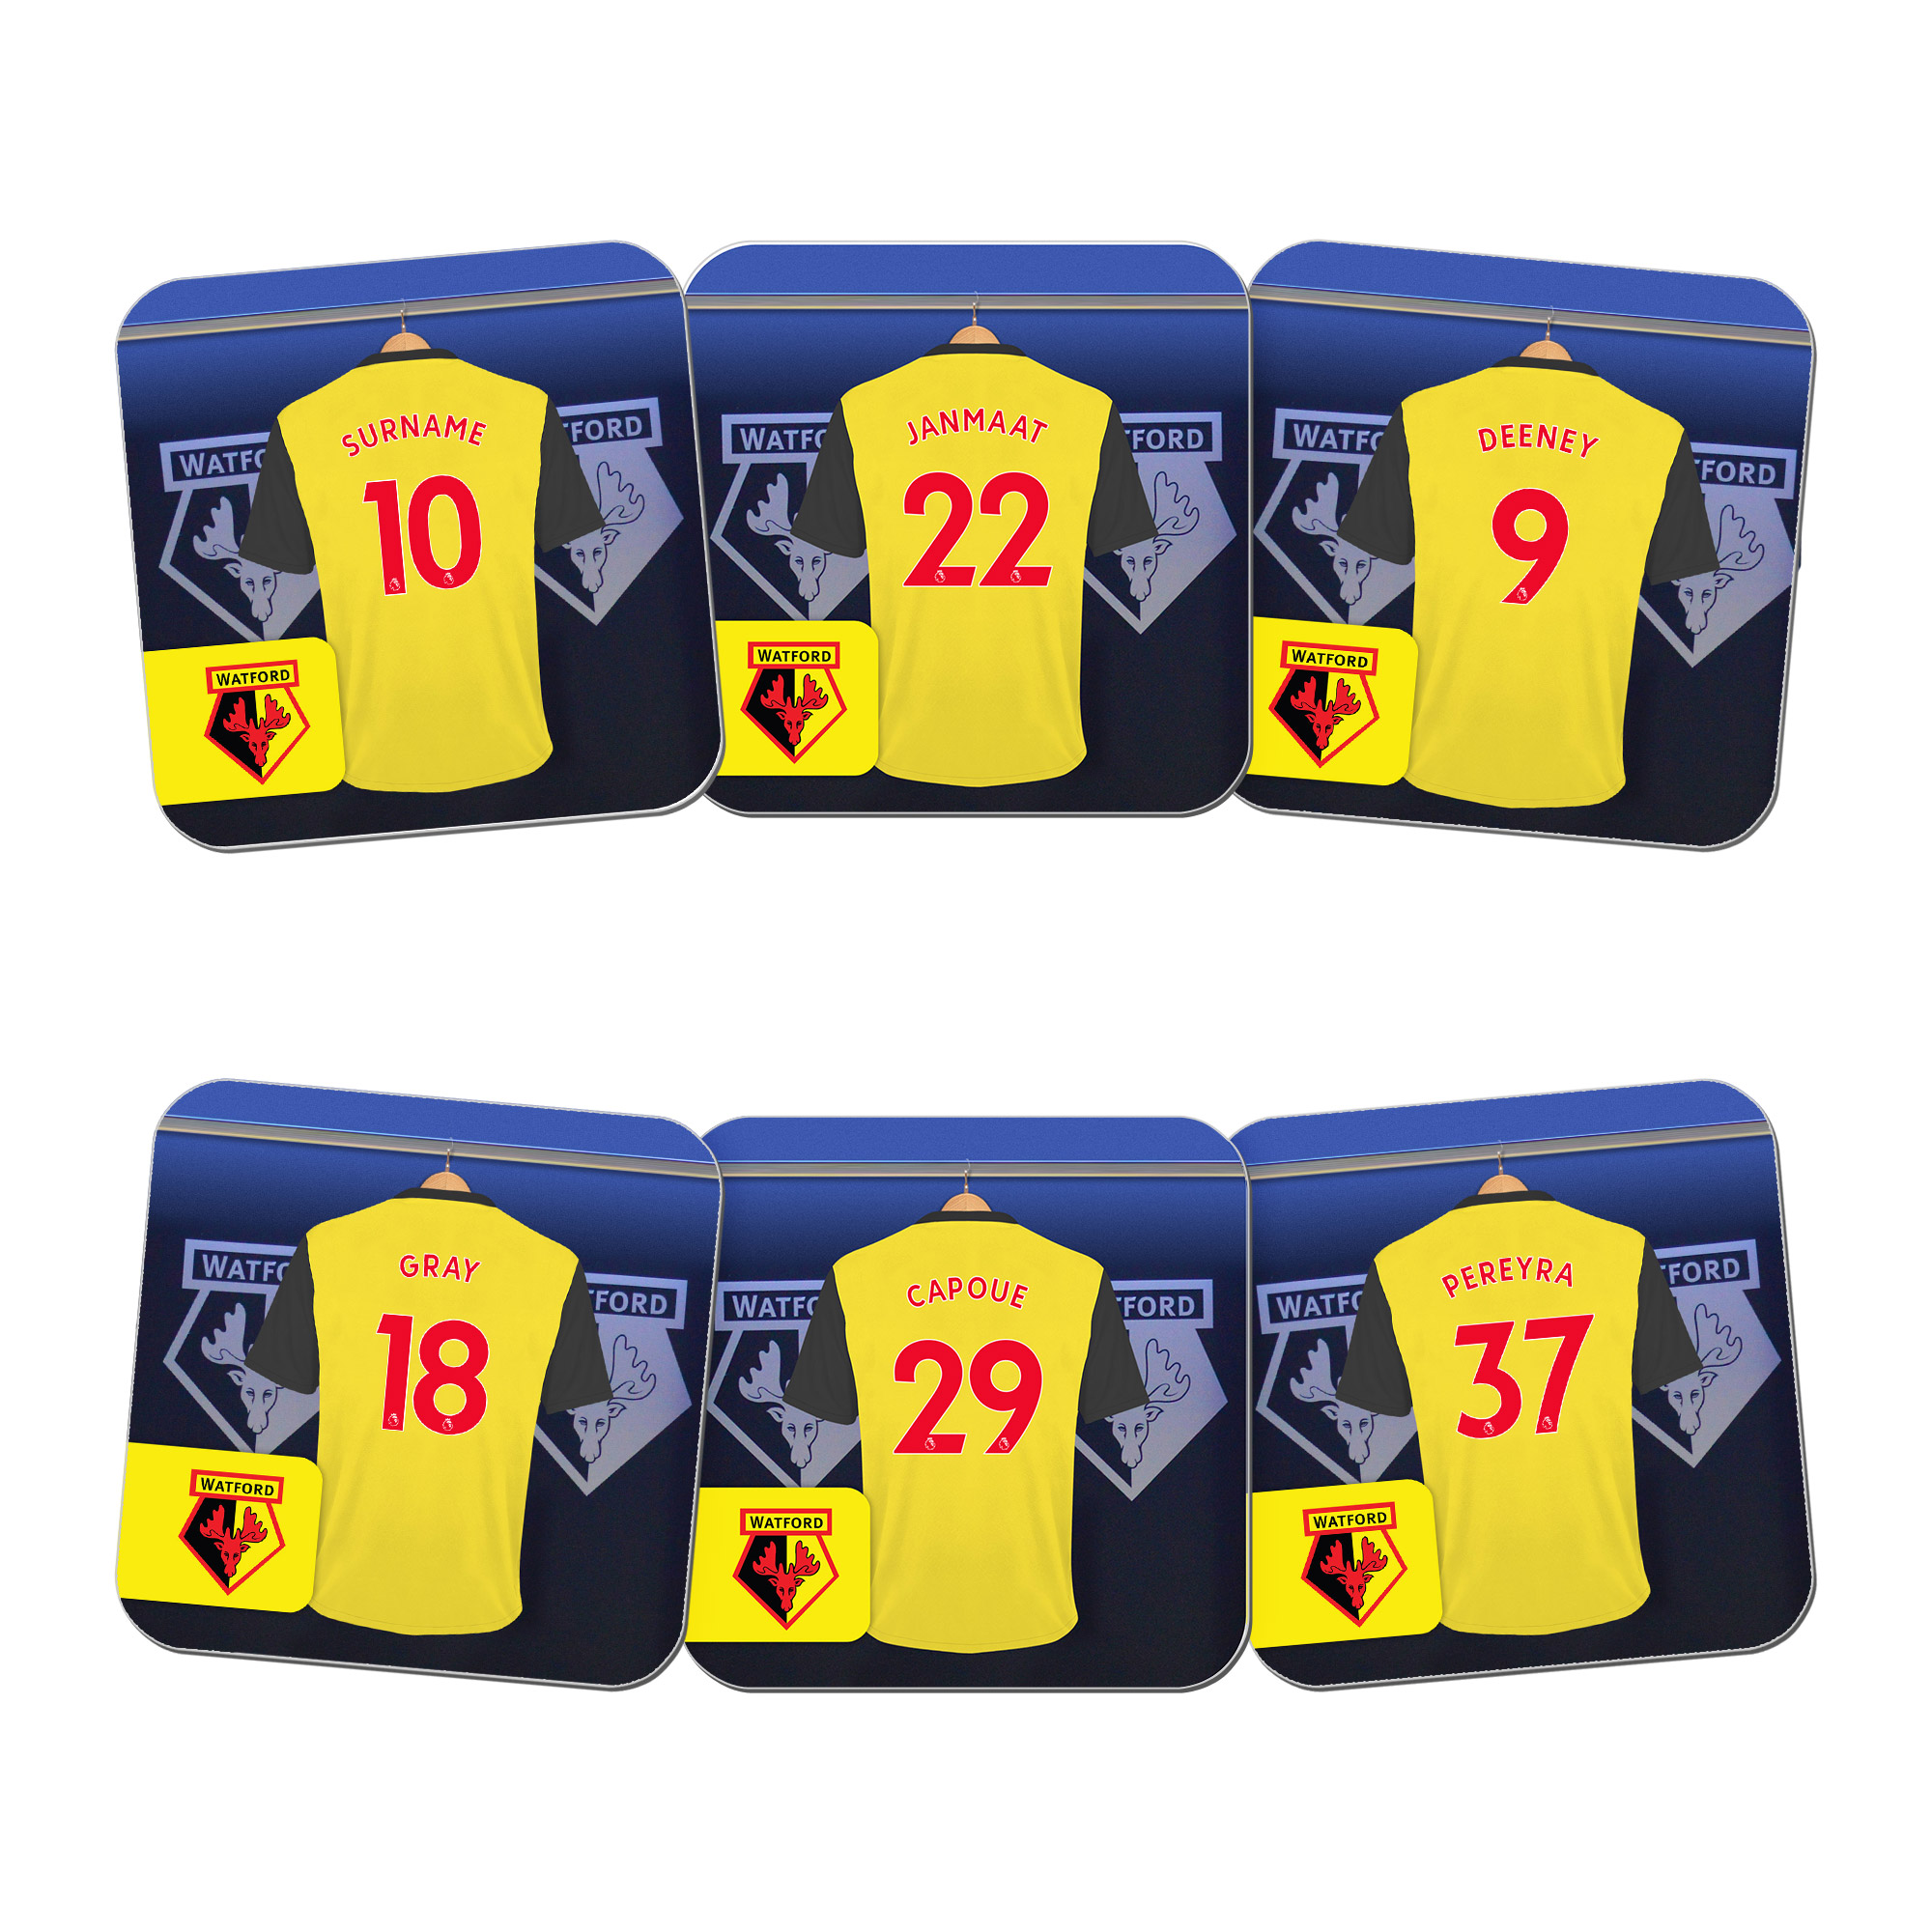 Watford FC Dressing Room Coasters